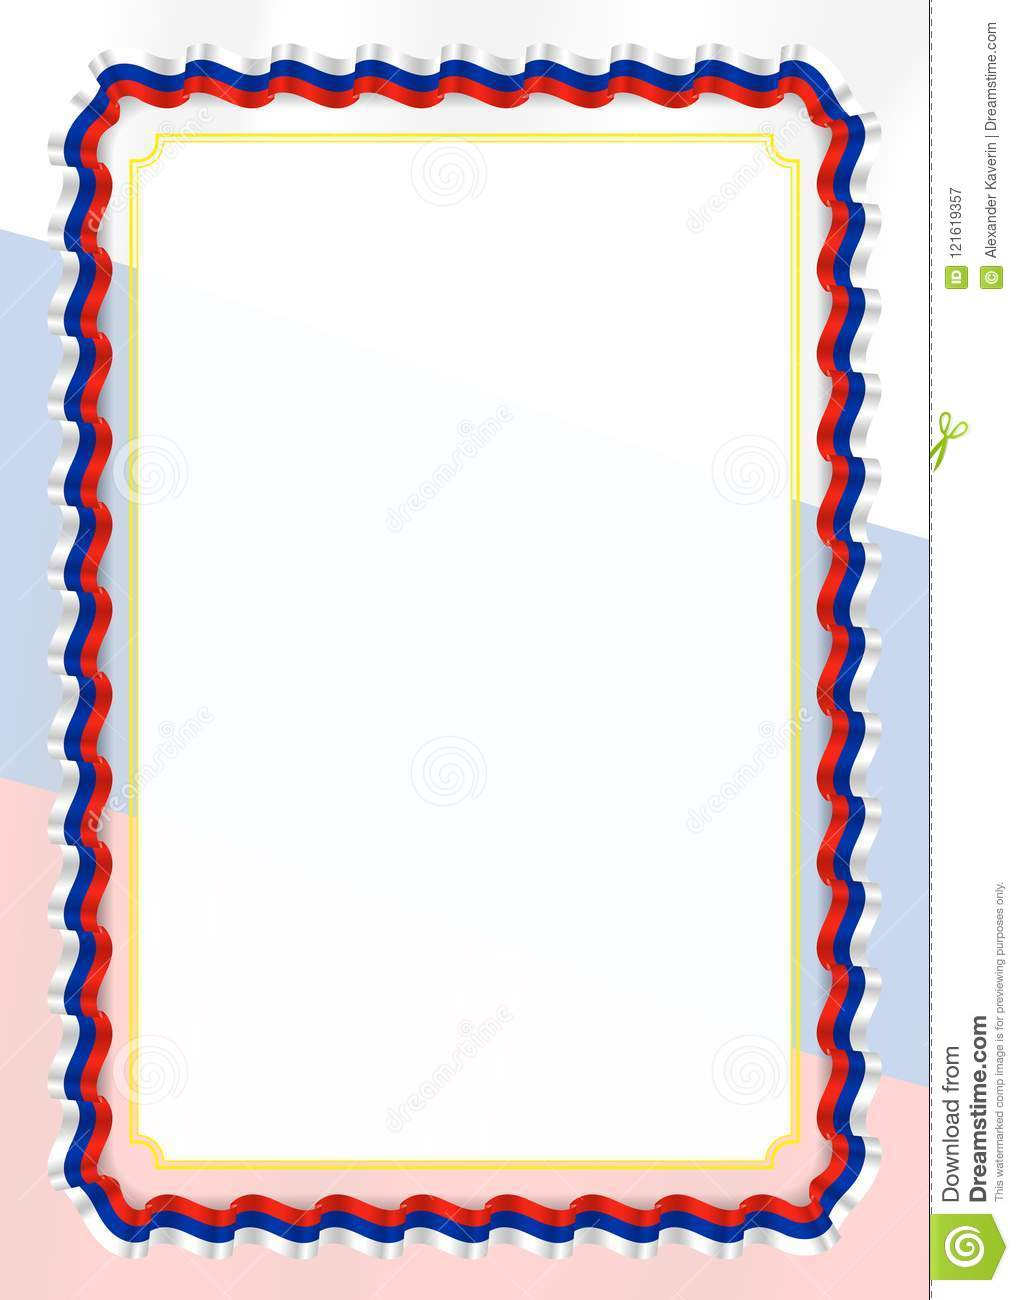 Frame And Border Of Ribbon With Russia Flag Template Elements For